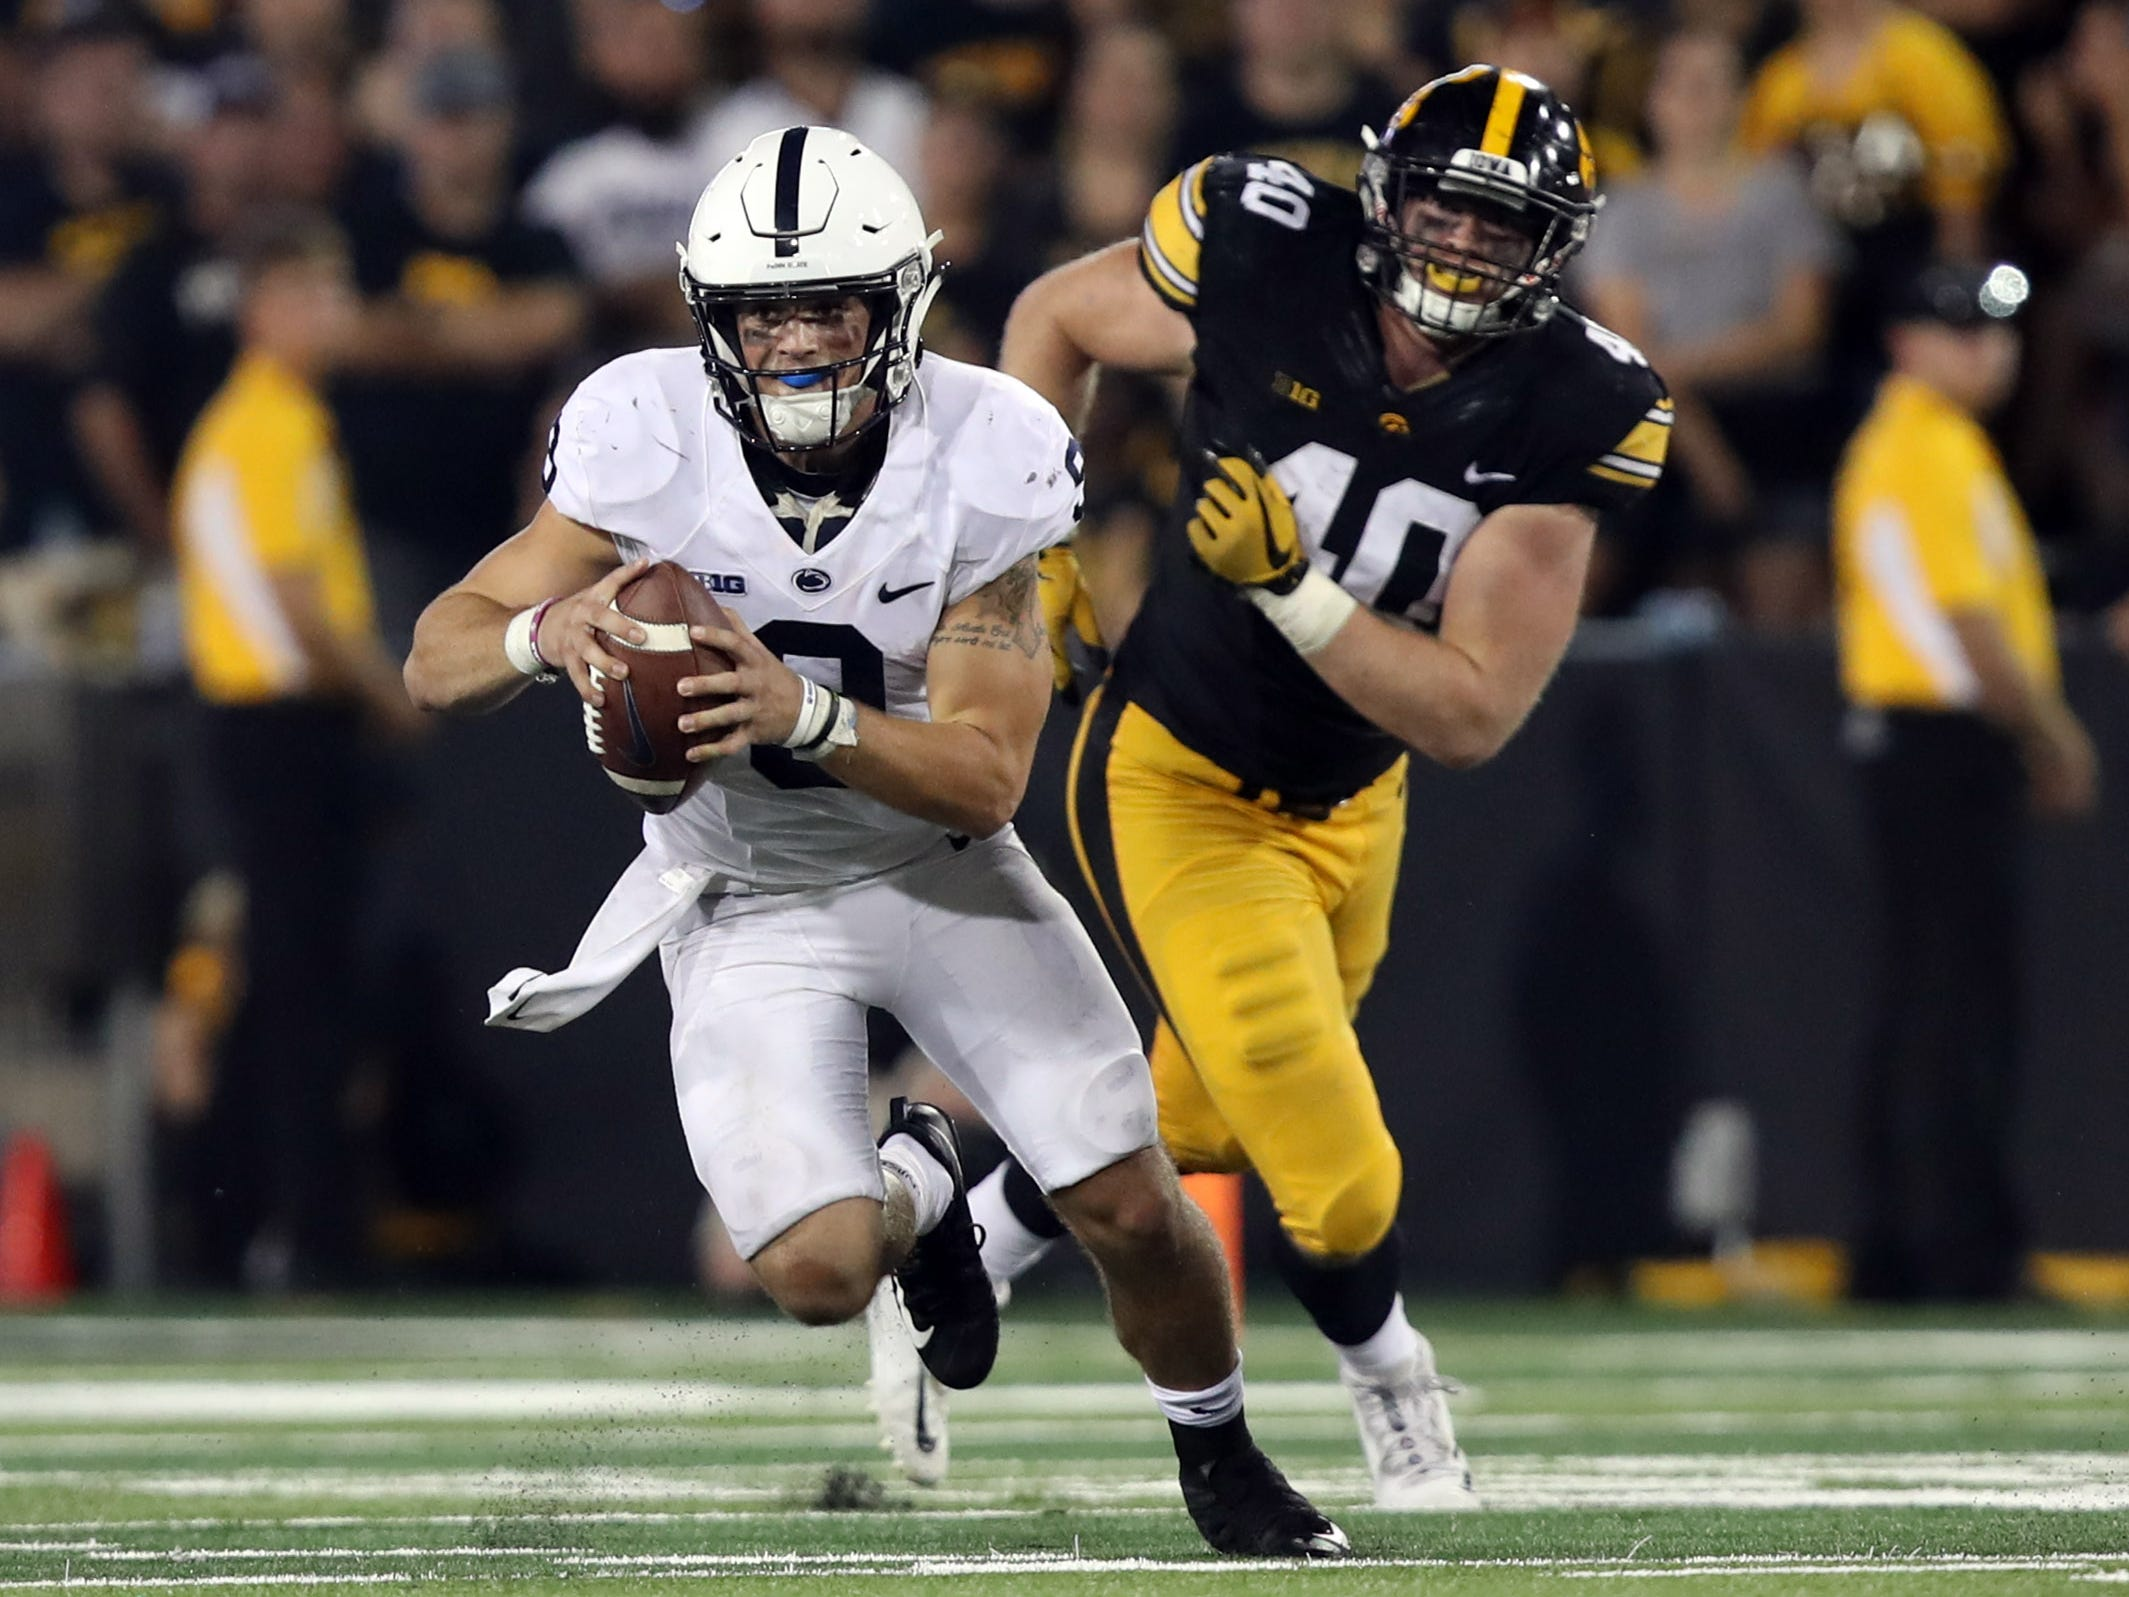 Penn State quarterback Trace McSorley (9) has given Parker Hesse (40) and Iowa fits over the past two seasons. It'll be up to the defensive ends to keep him contained Saturday at Beaver Stadium.